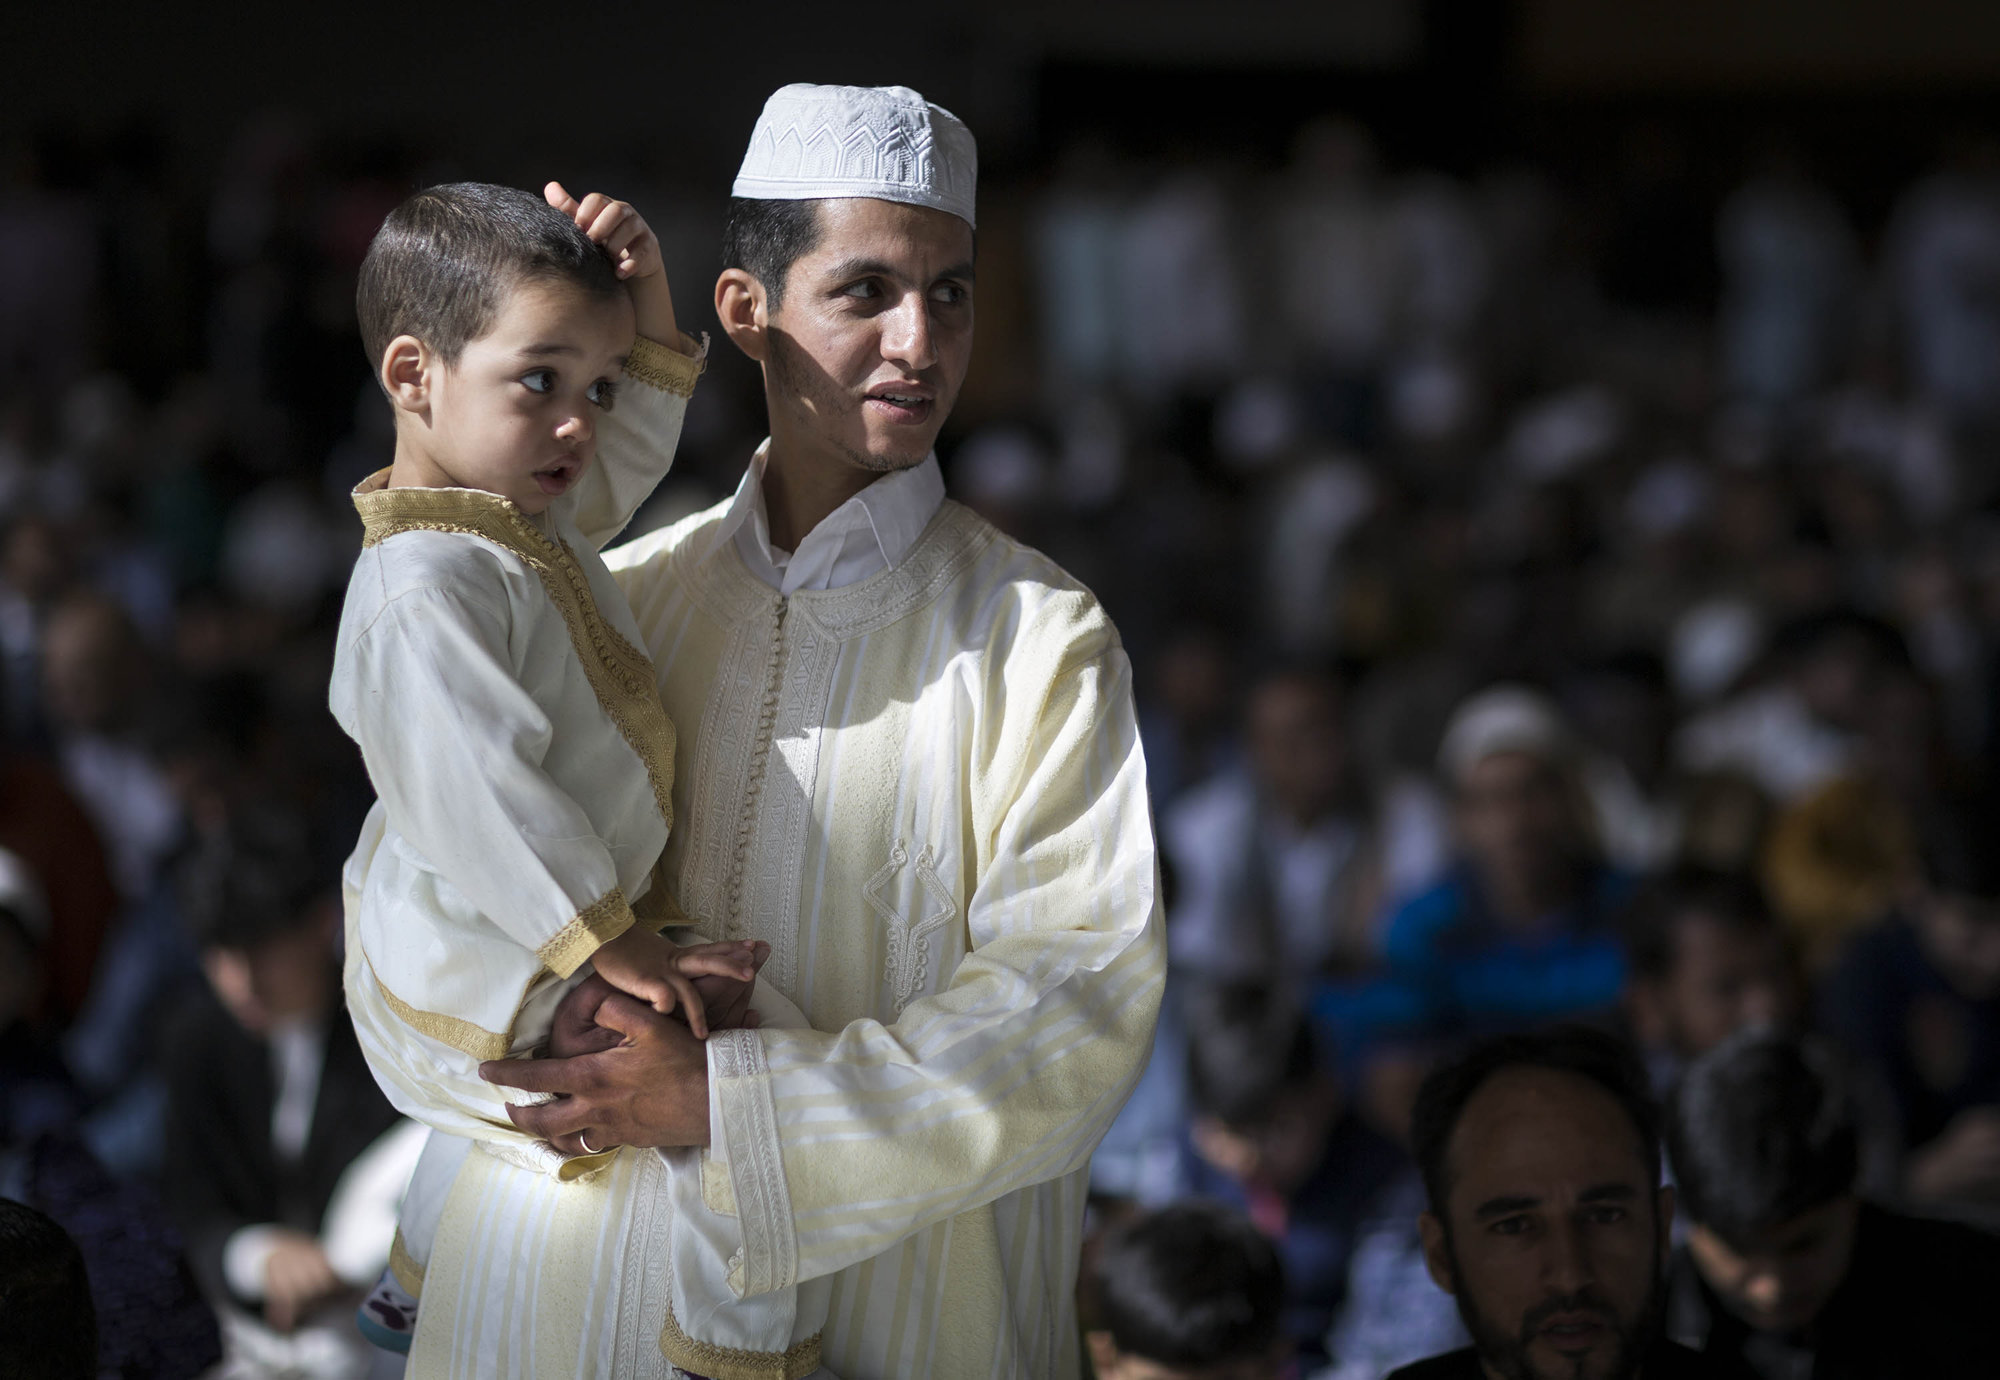 Father and Son, Eid al Fitr